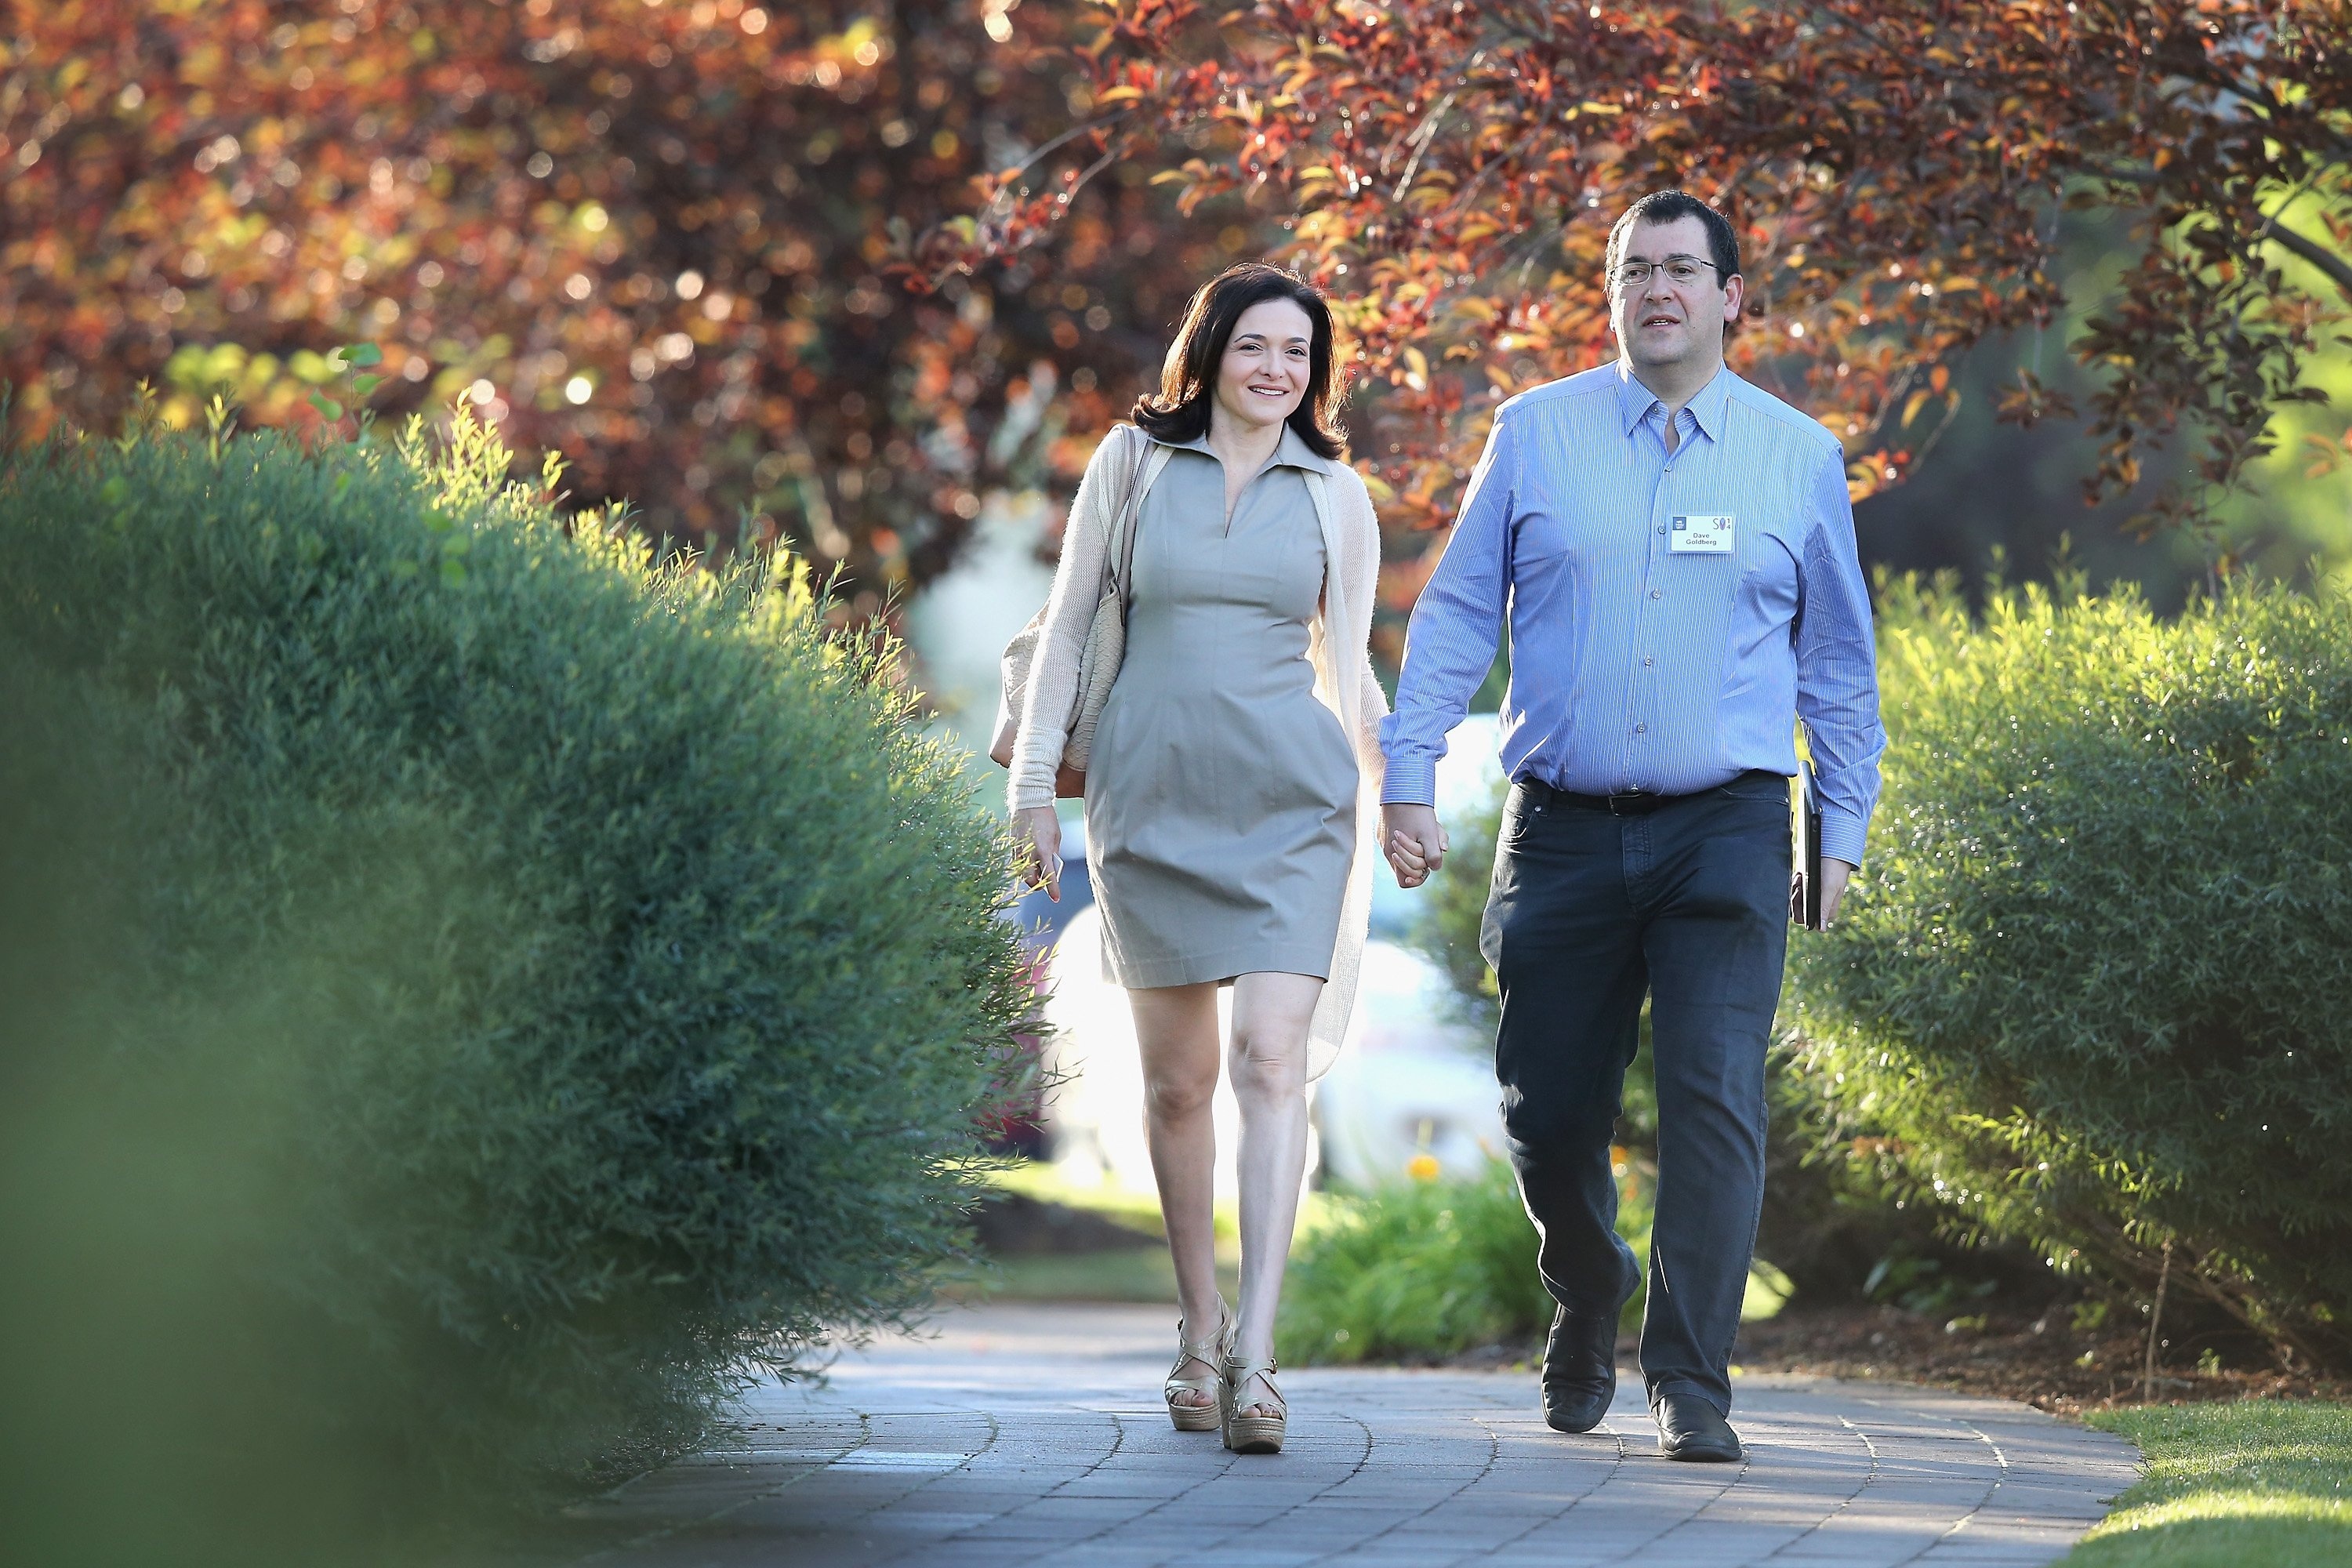 Facebook COO Sheryl Sandberg and husband Dave Goldberg attending the Allen & Company Sun Valley Conference on July 9, 2014 in Sun Valley, Idaho.